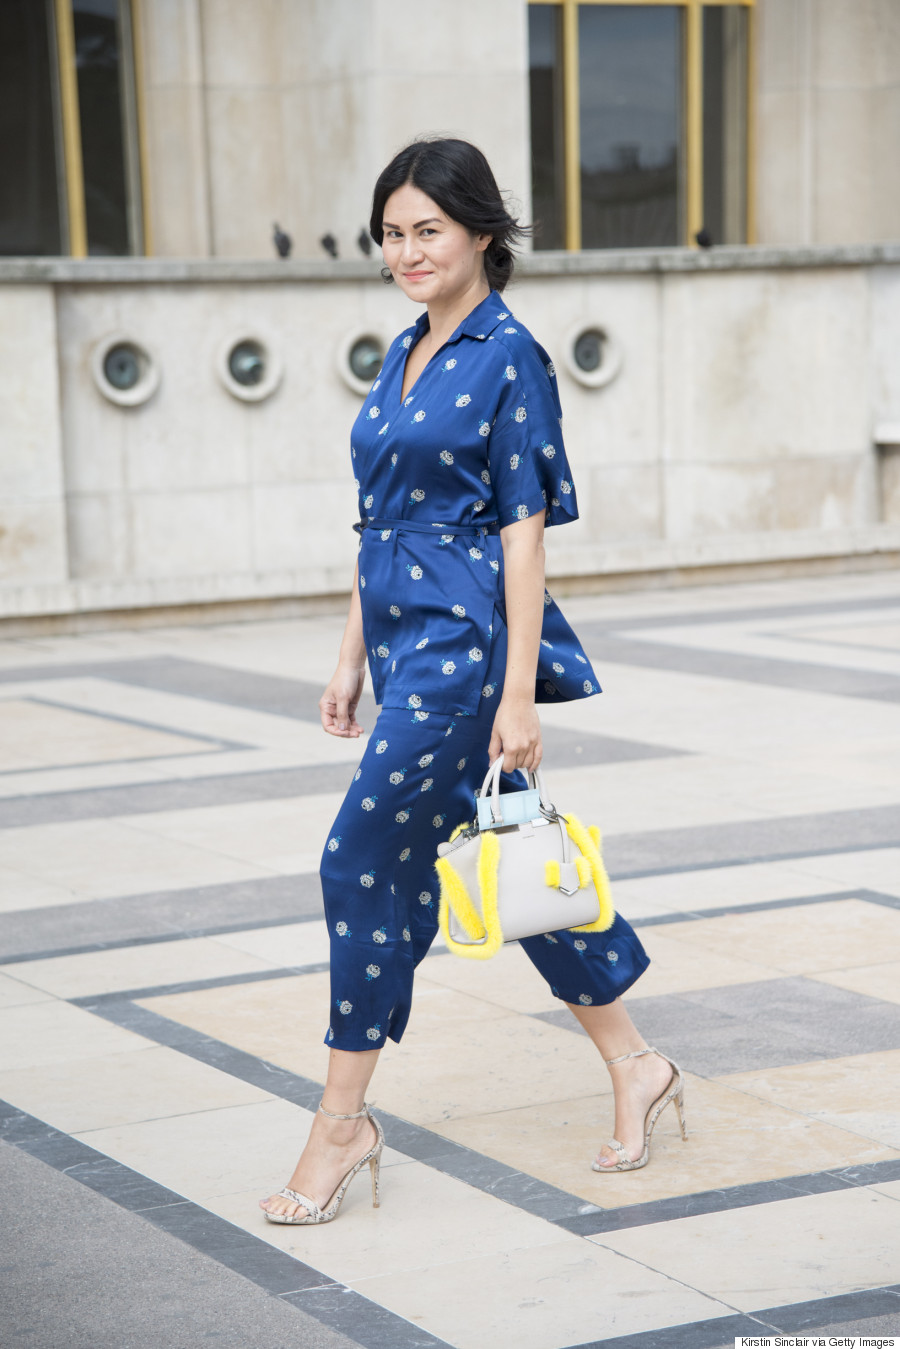 Pyjama Dressing: How To Style Fashion's Most Comfortable